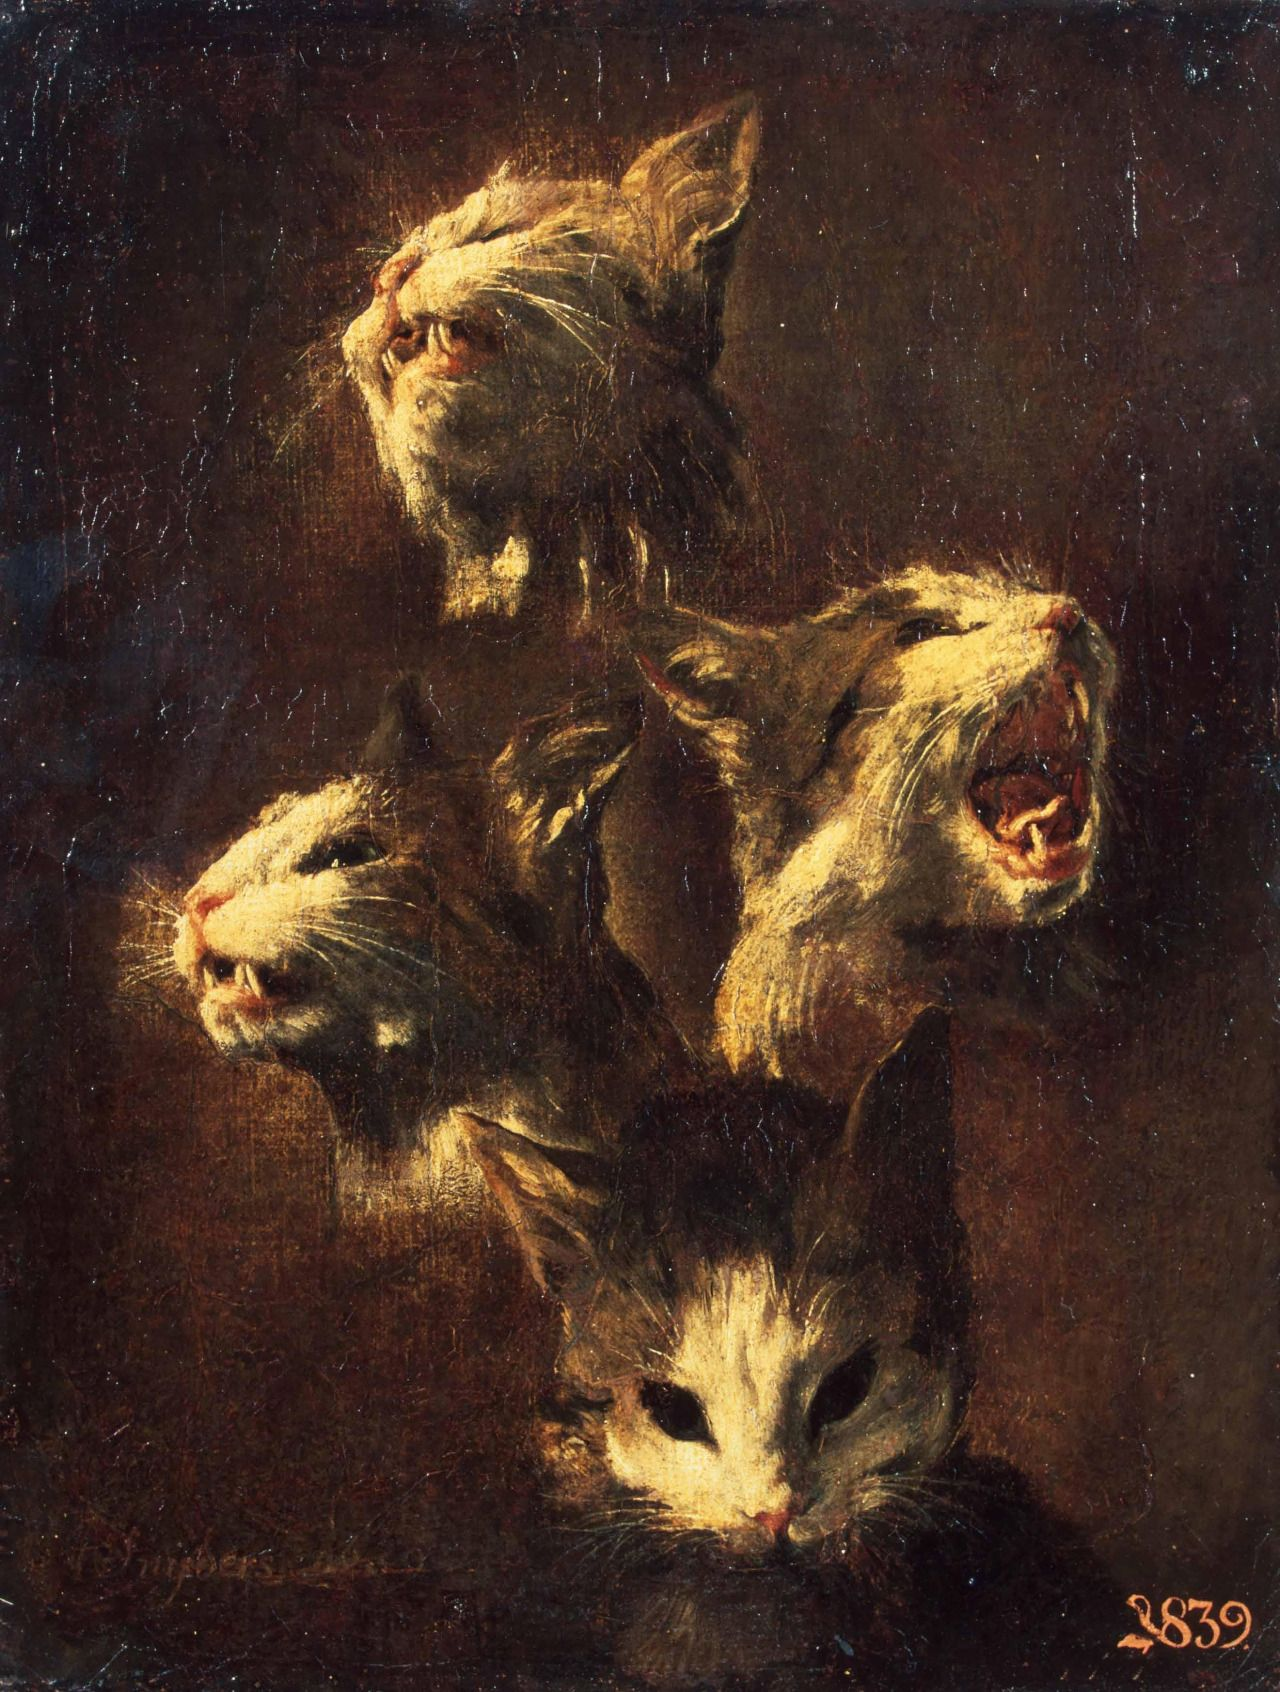 Study of a Cat's Head |1609 ~ by Frans Snyders